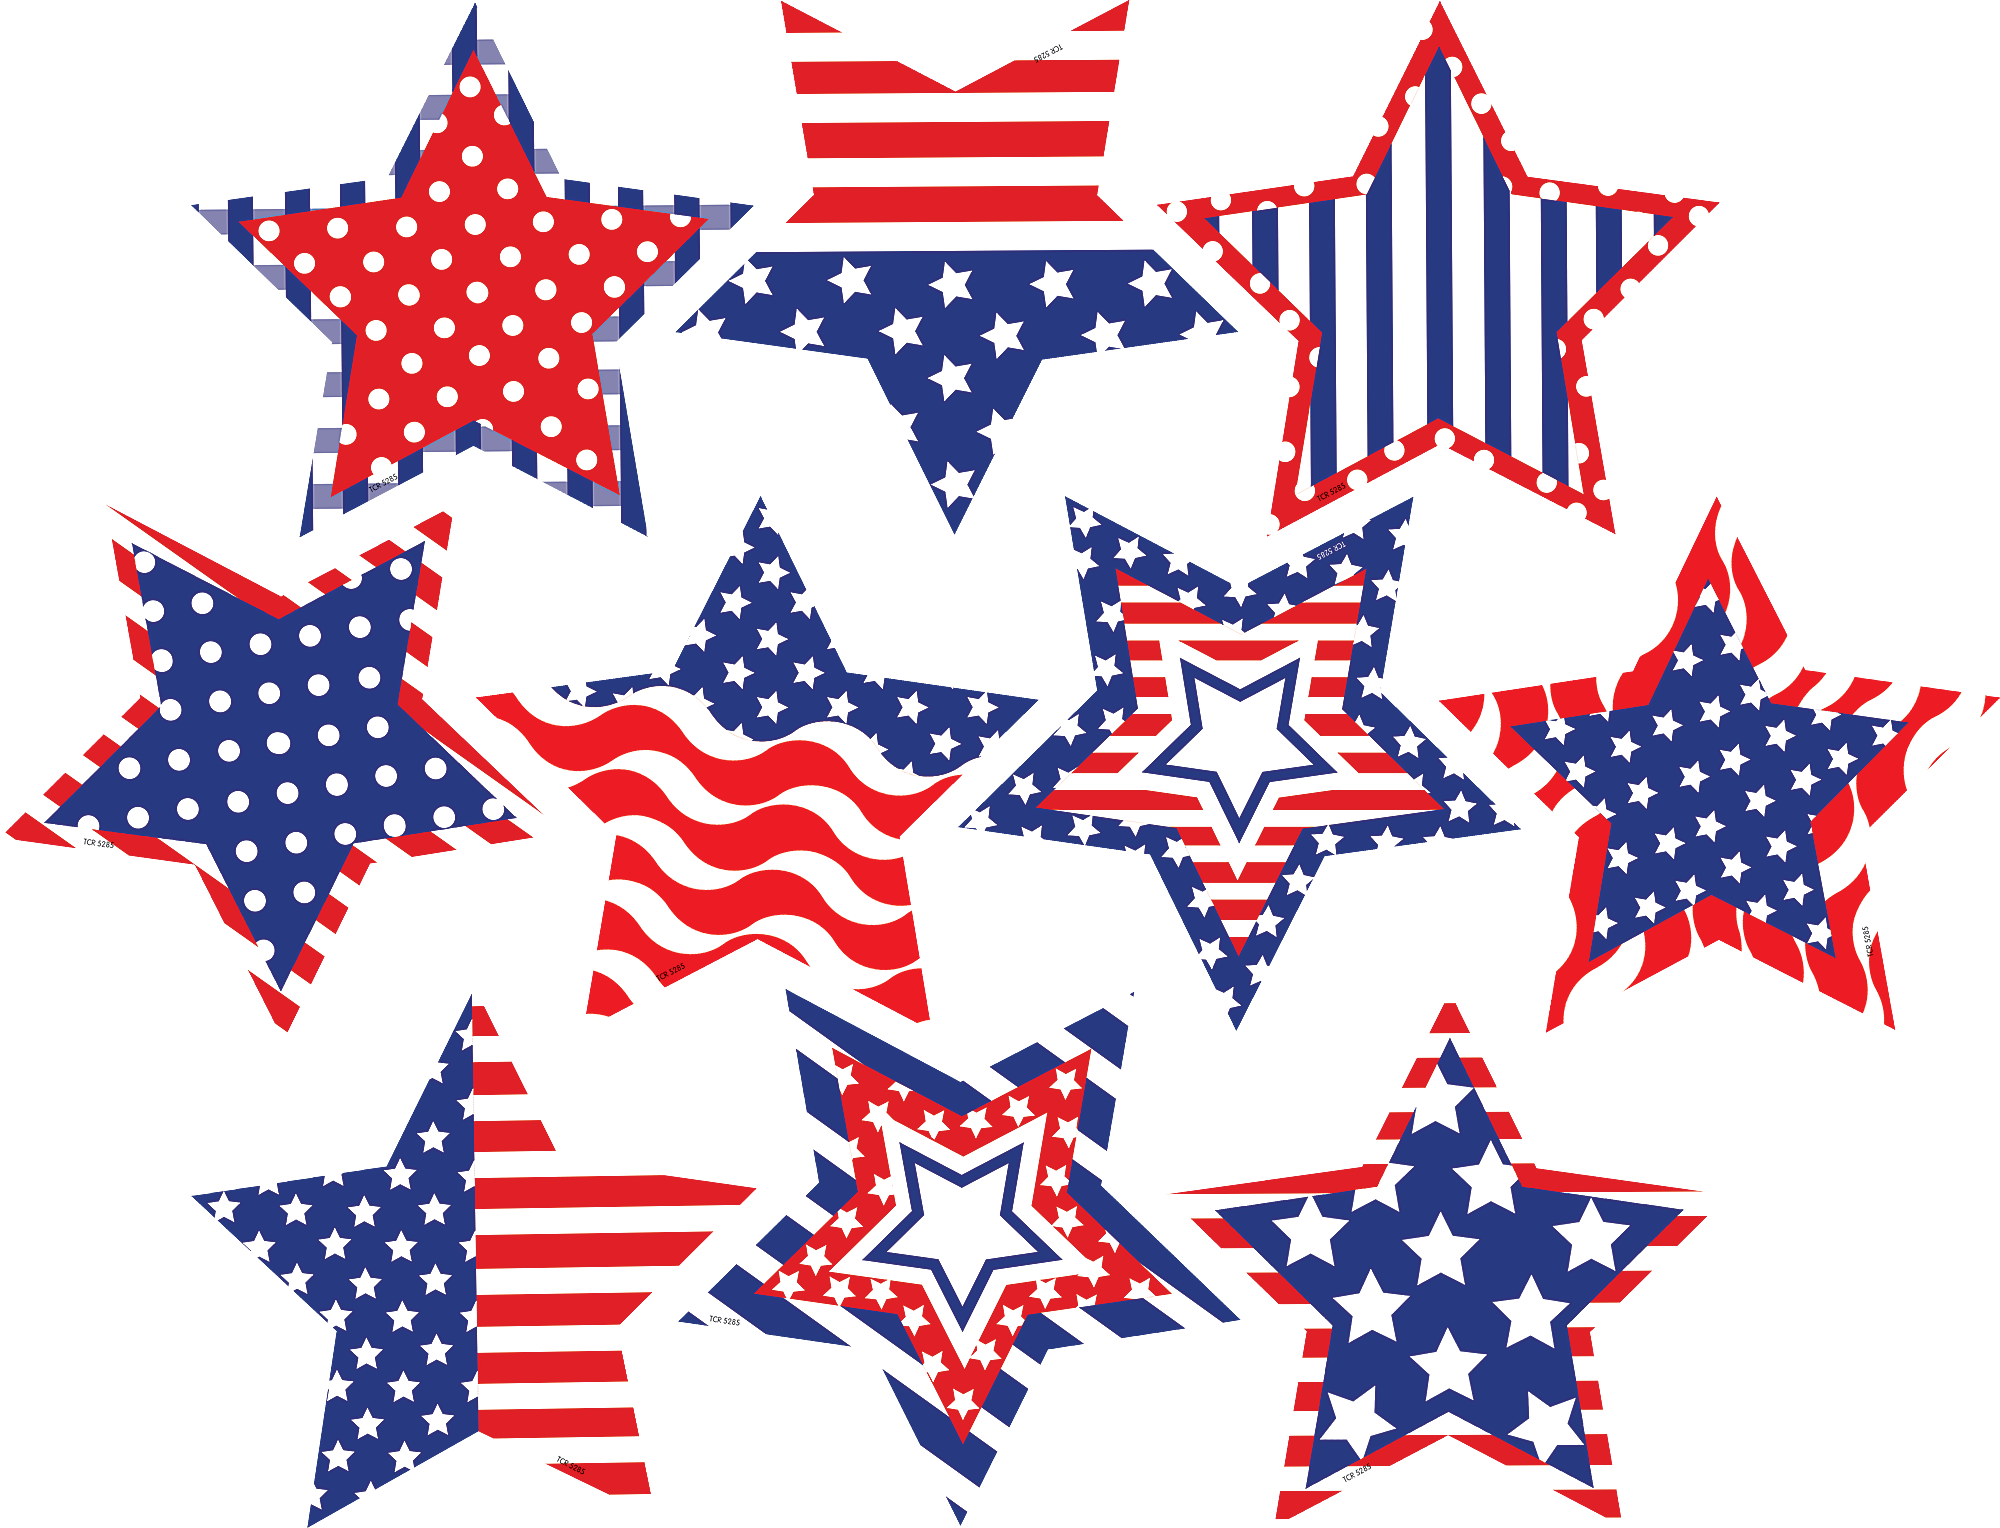 Accent star clipart image royalty free library Patriotic Fancy Stars Accents | Pinterest | Fancy, Capt america and Star image royalty free library